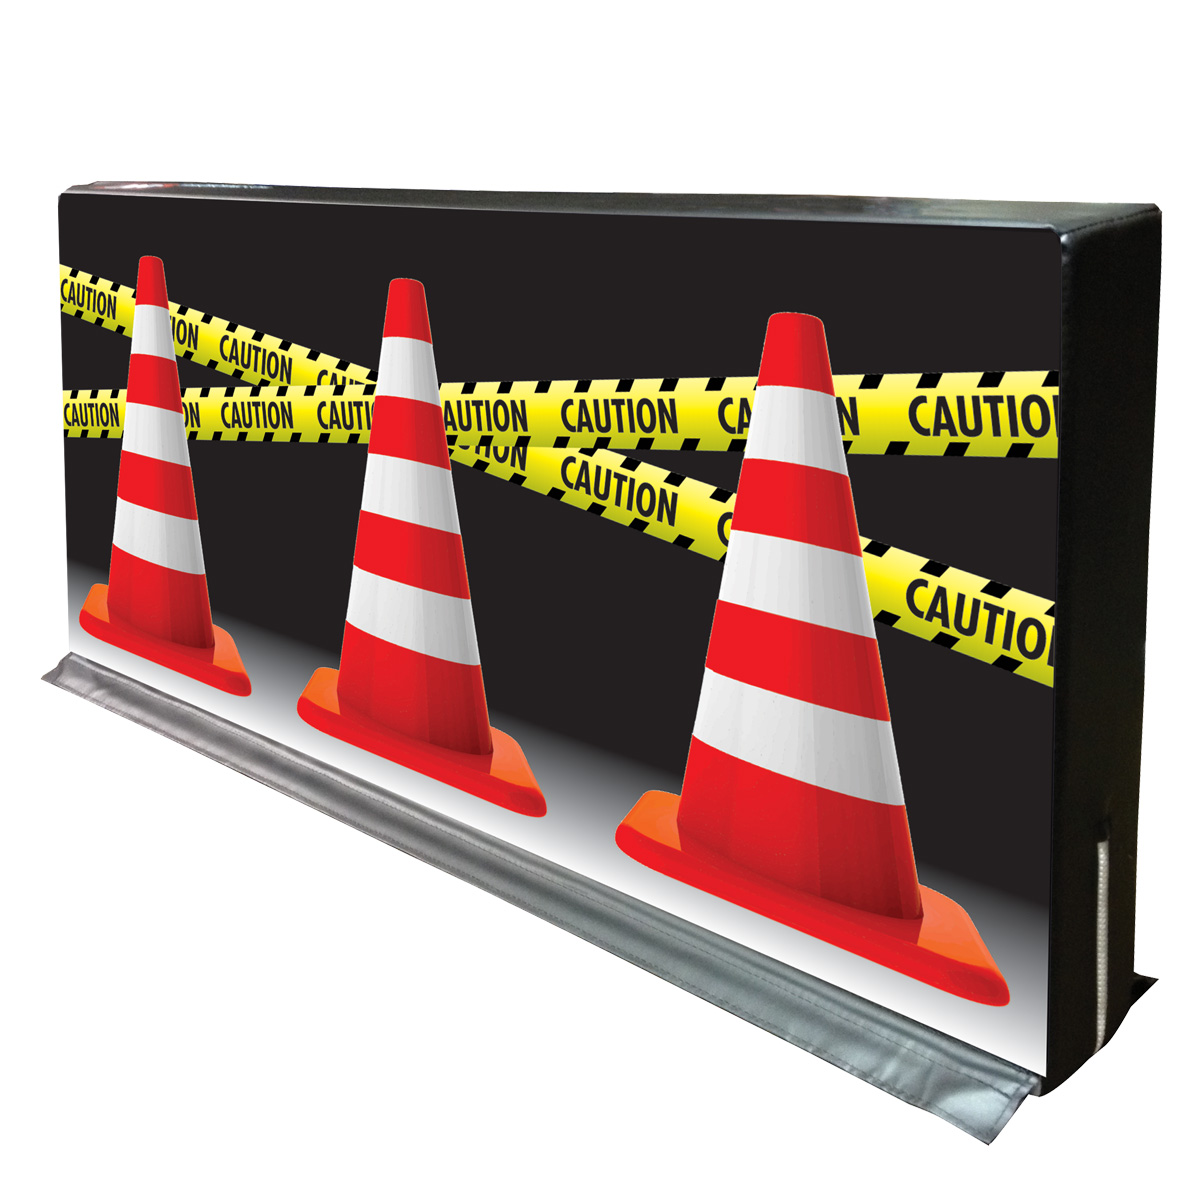 traffic cones and caution tape hedge divider wall by mancino